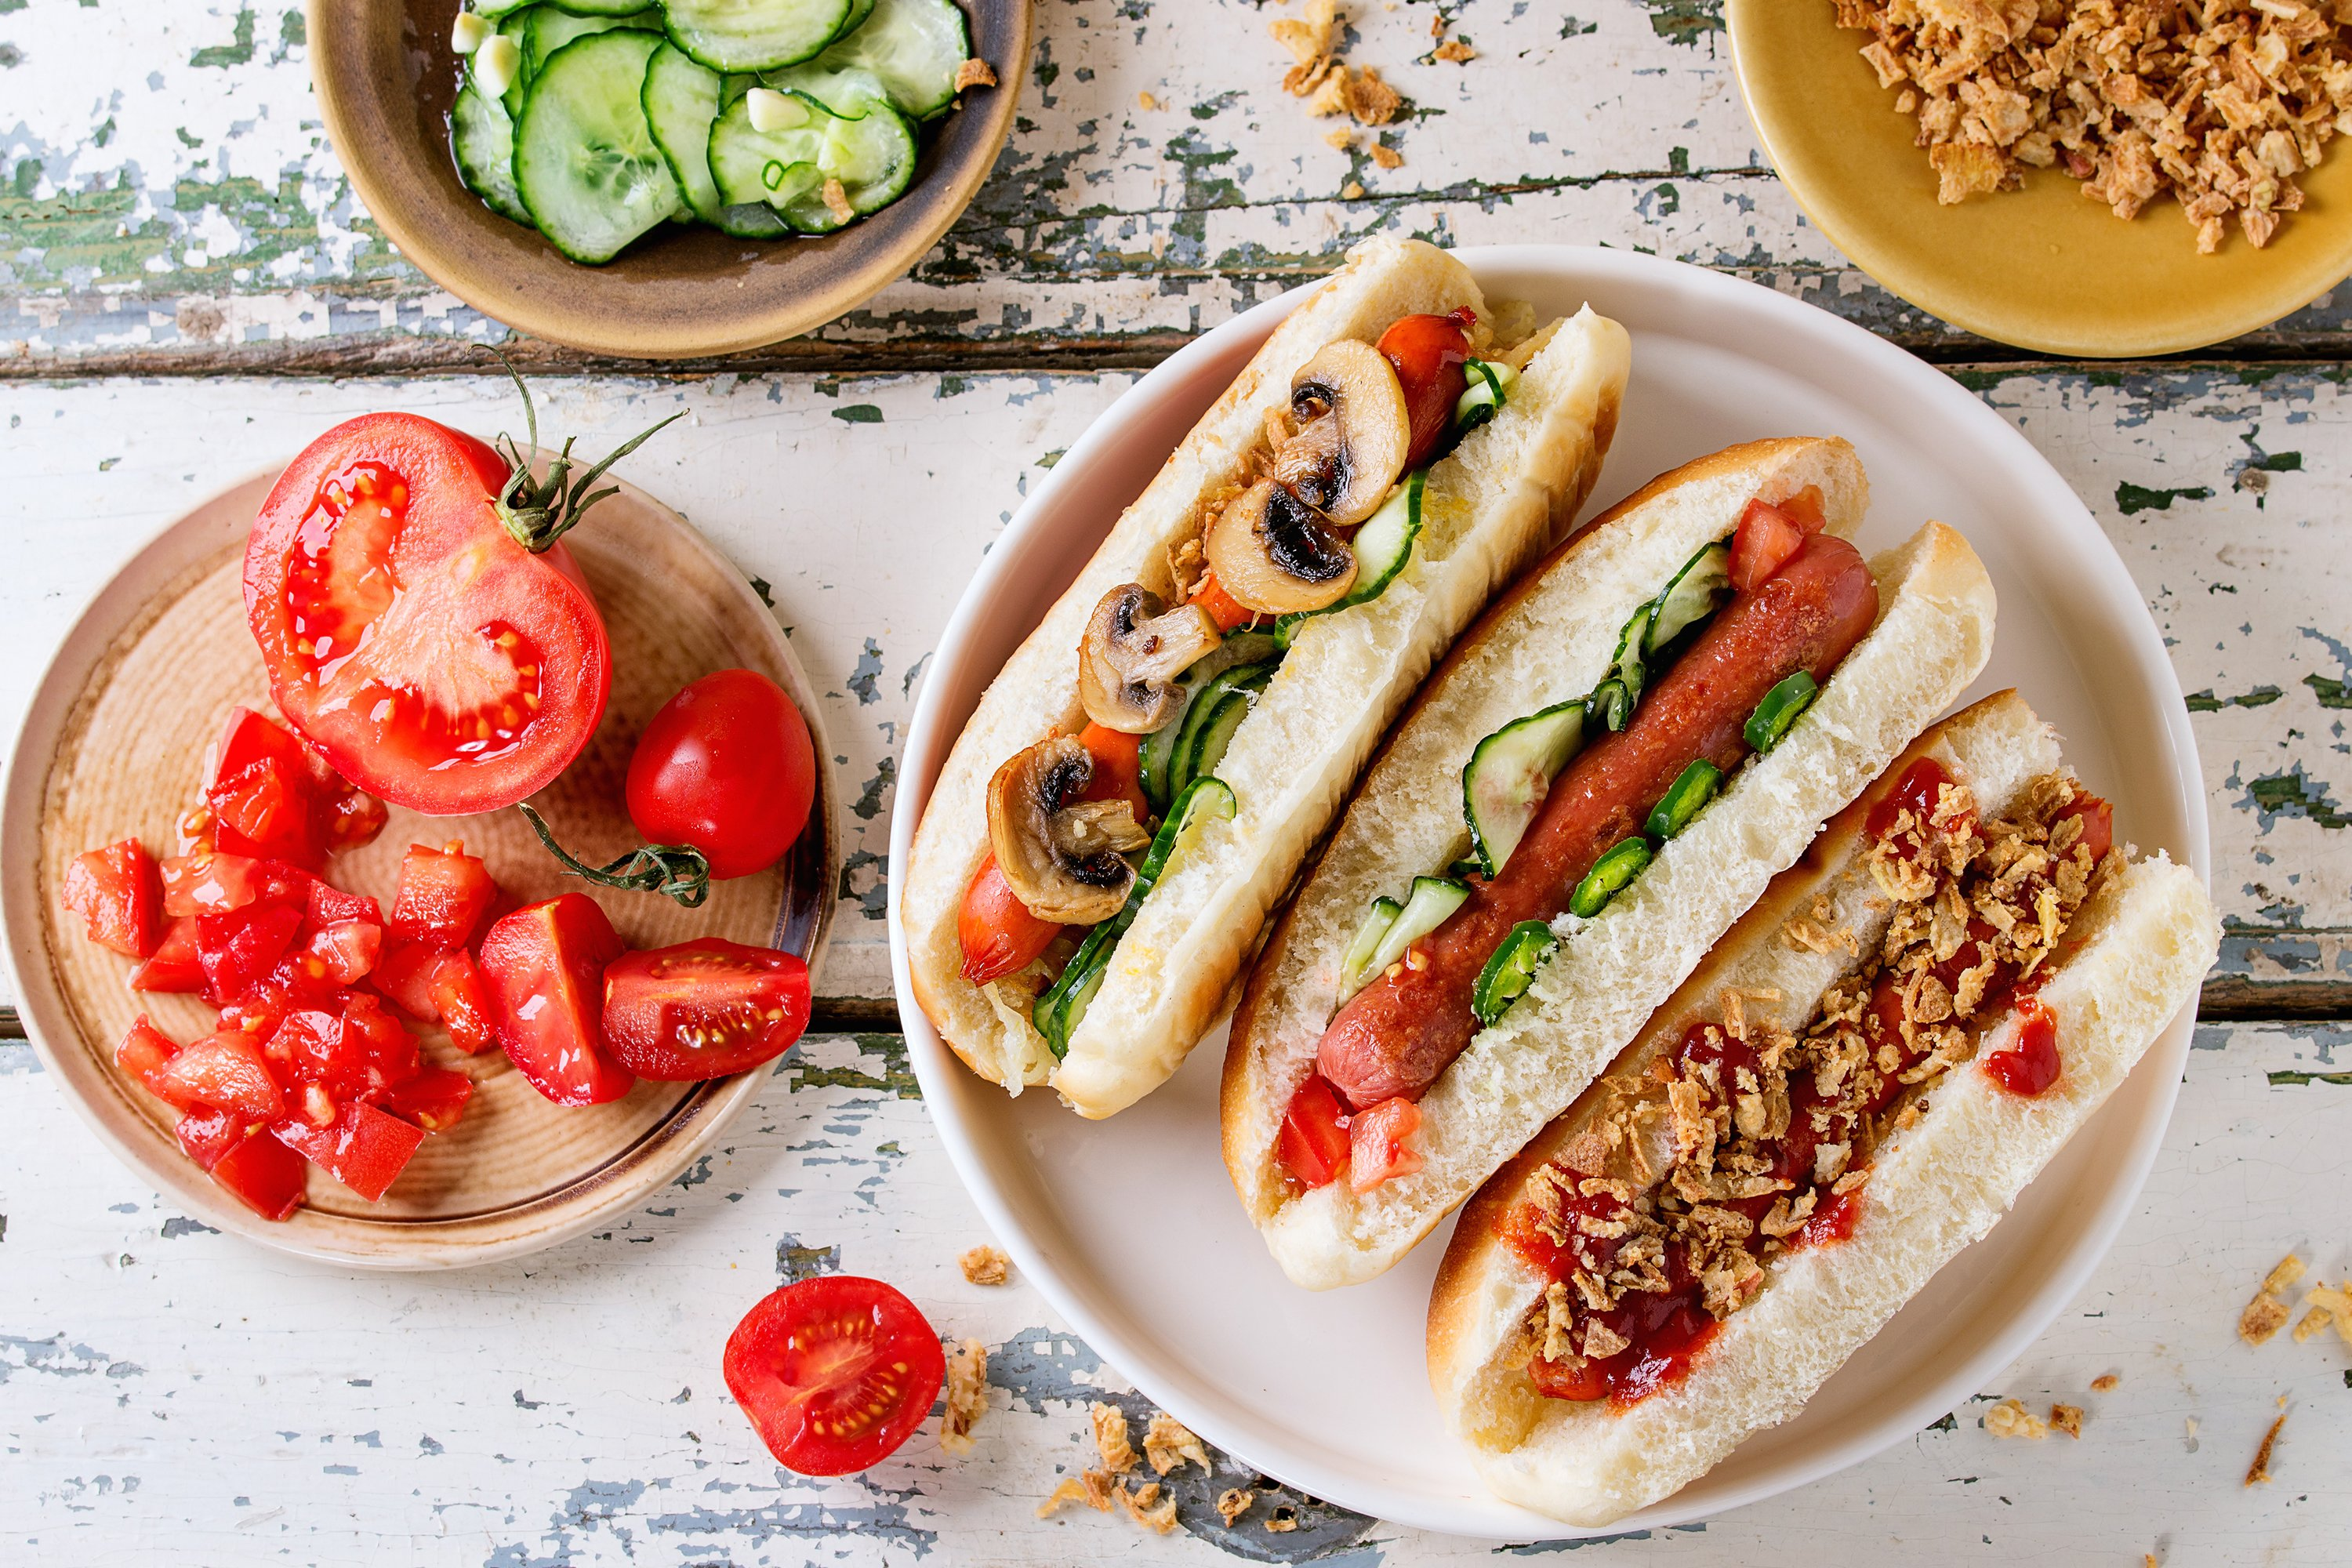 Assortment of homemade hot dogs example image 1